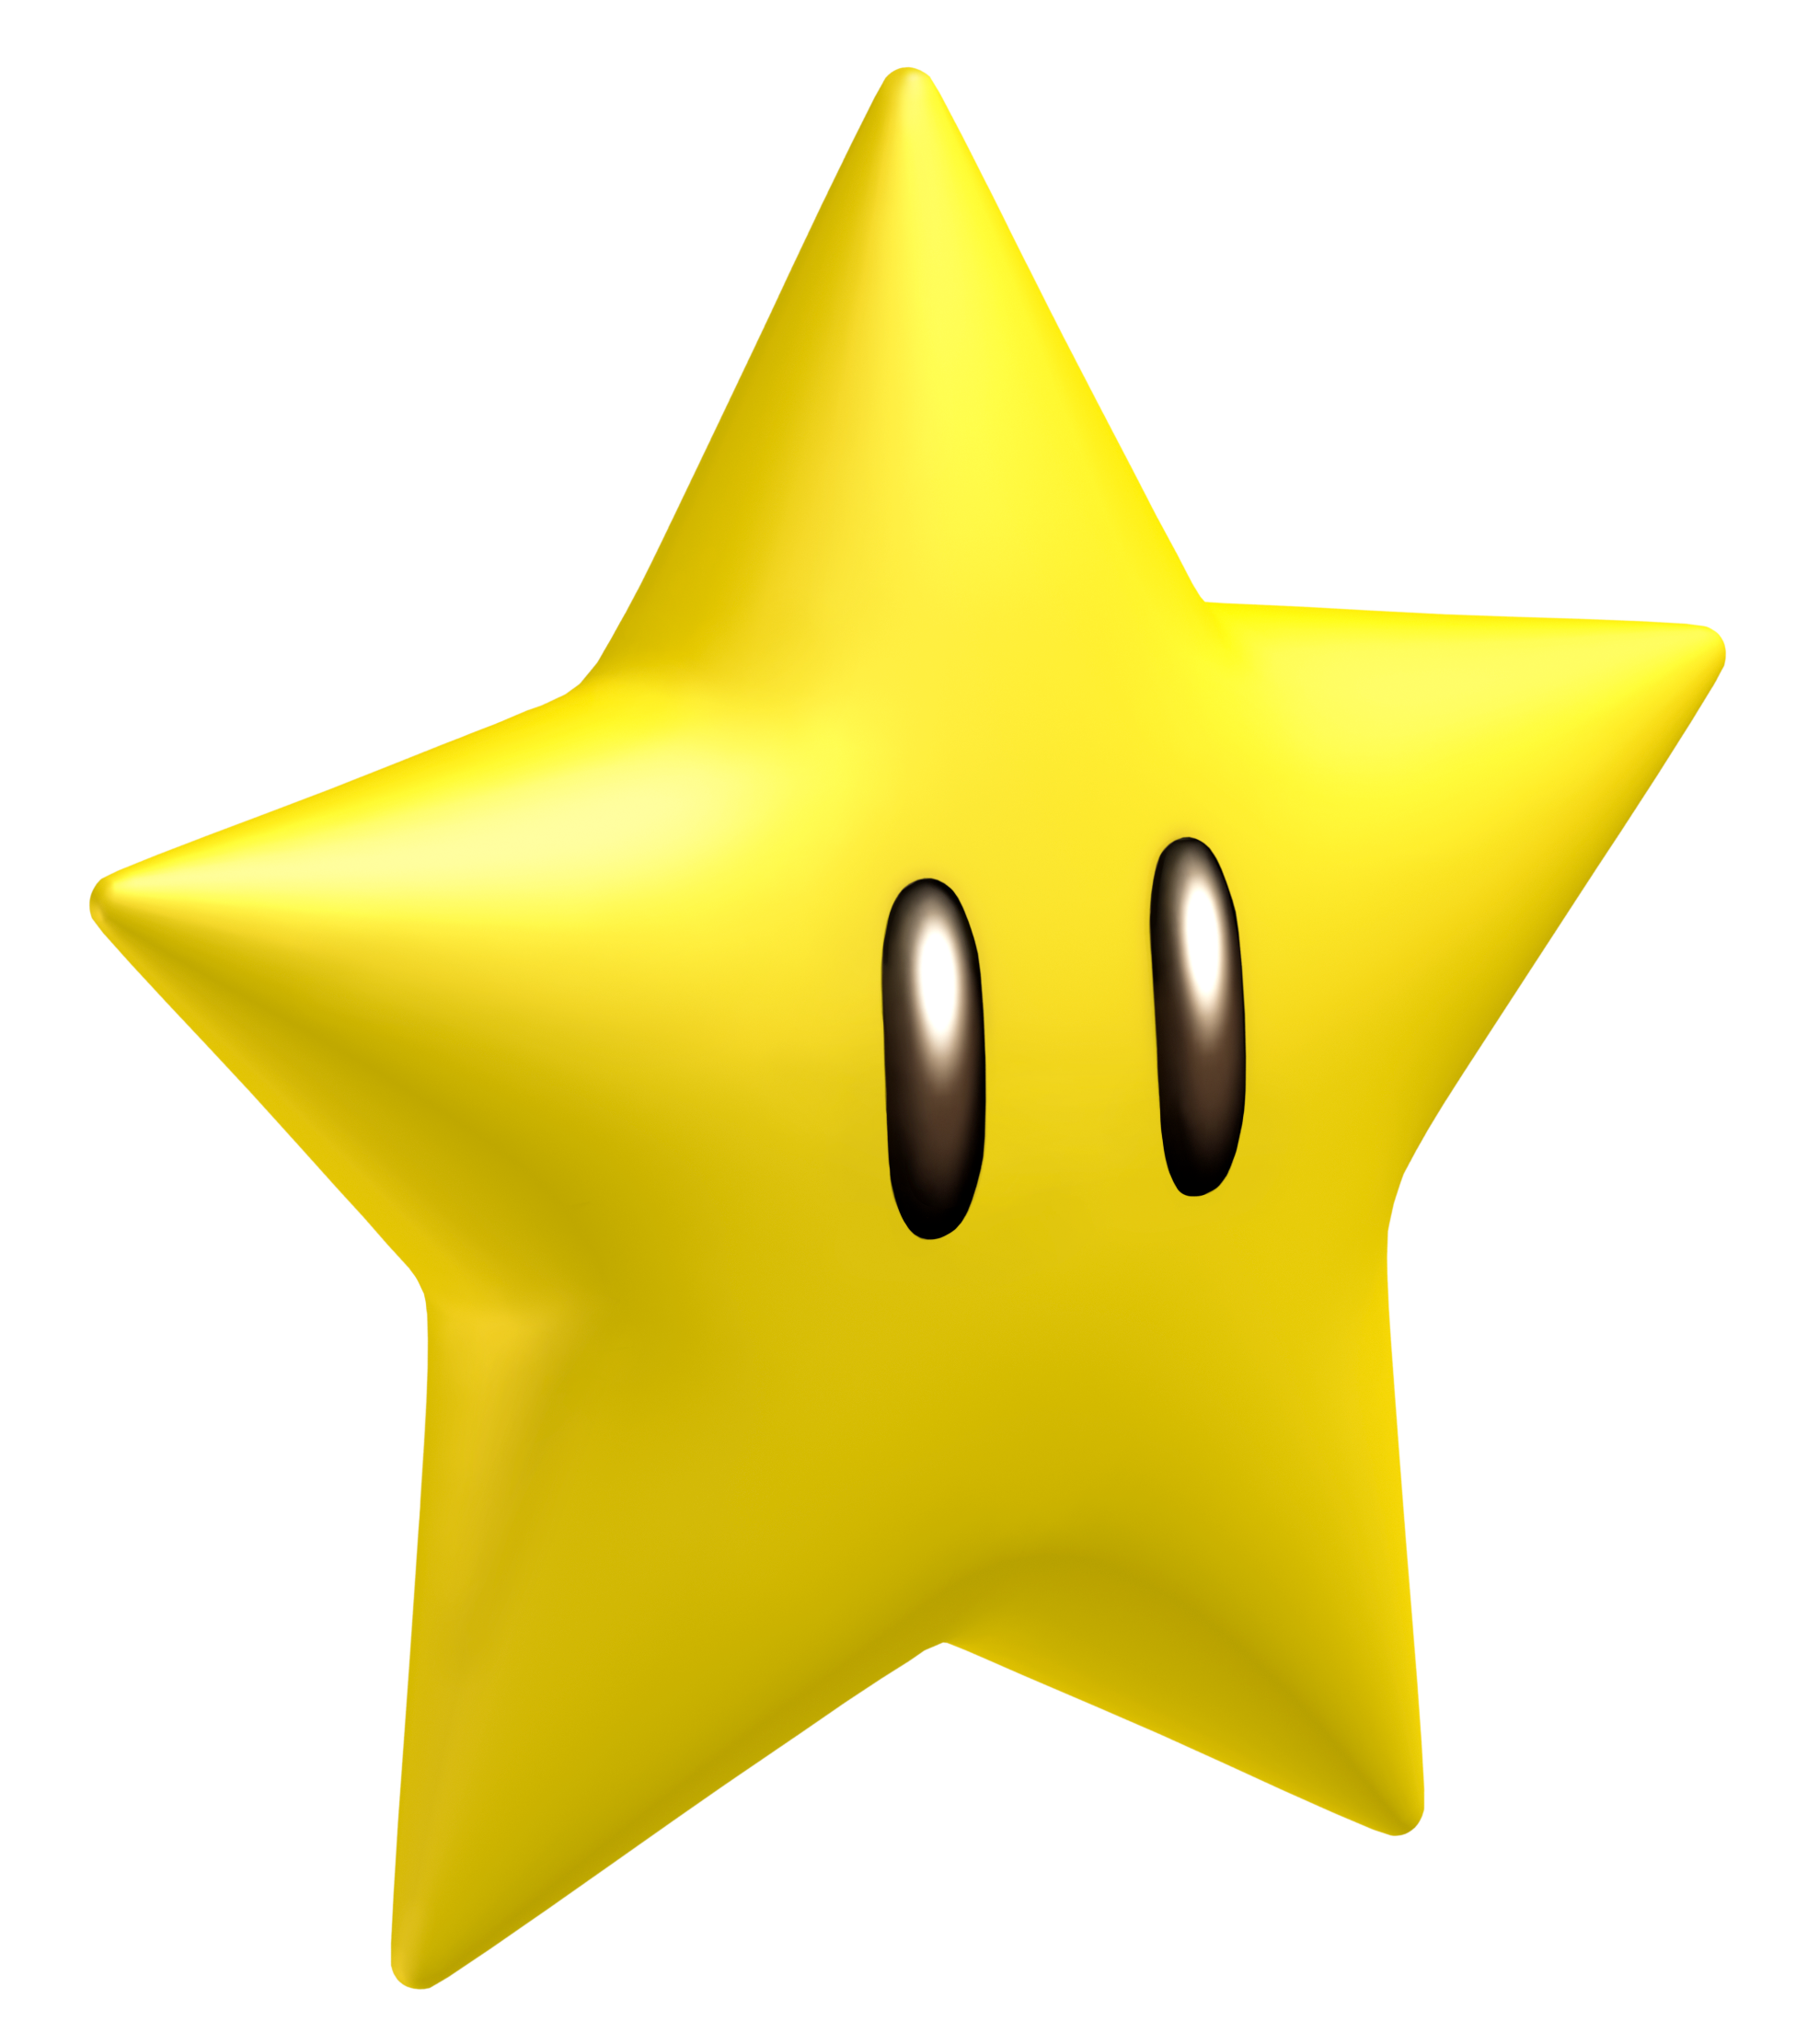 Image Star Super Mario 3d Land Png Nintendo 3ds Wiki Fandom Powered By Wikia